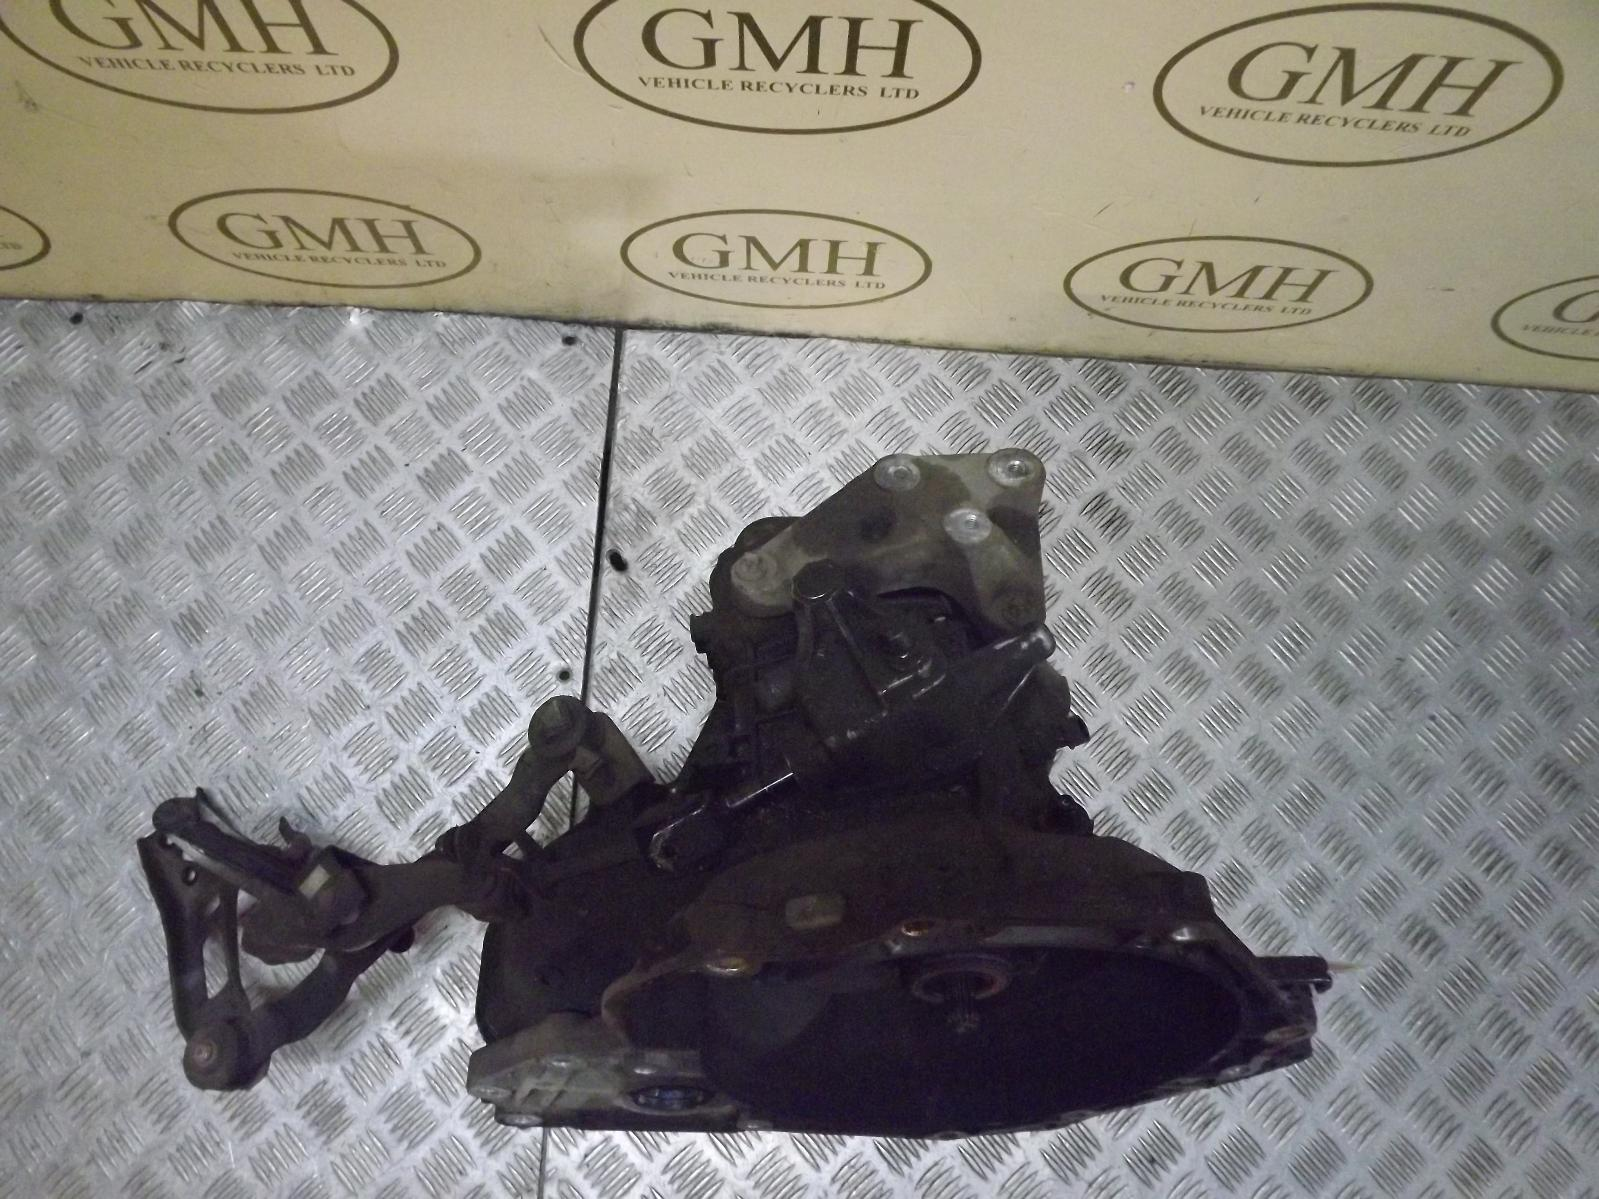 Gmh Car Parts Co Uk